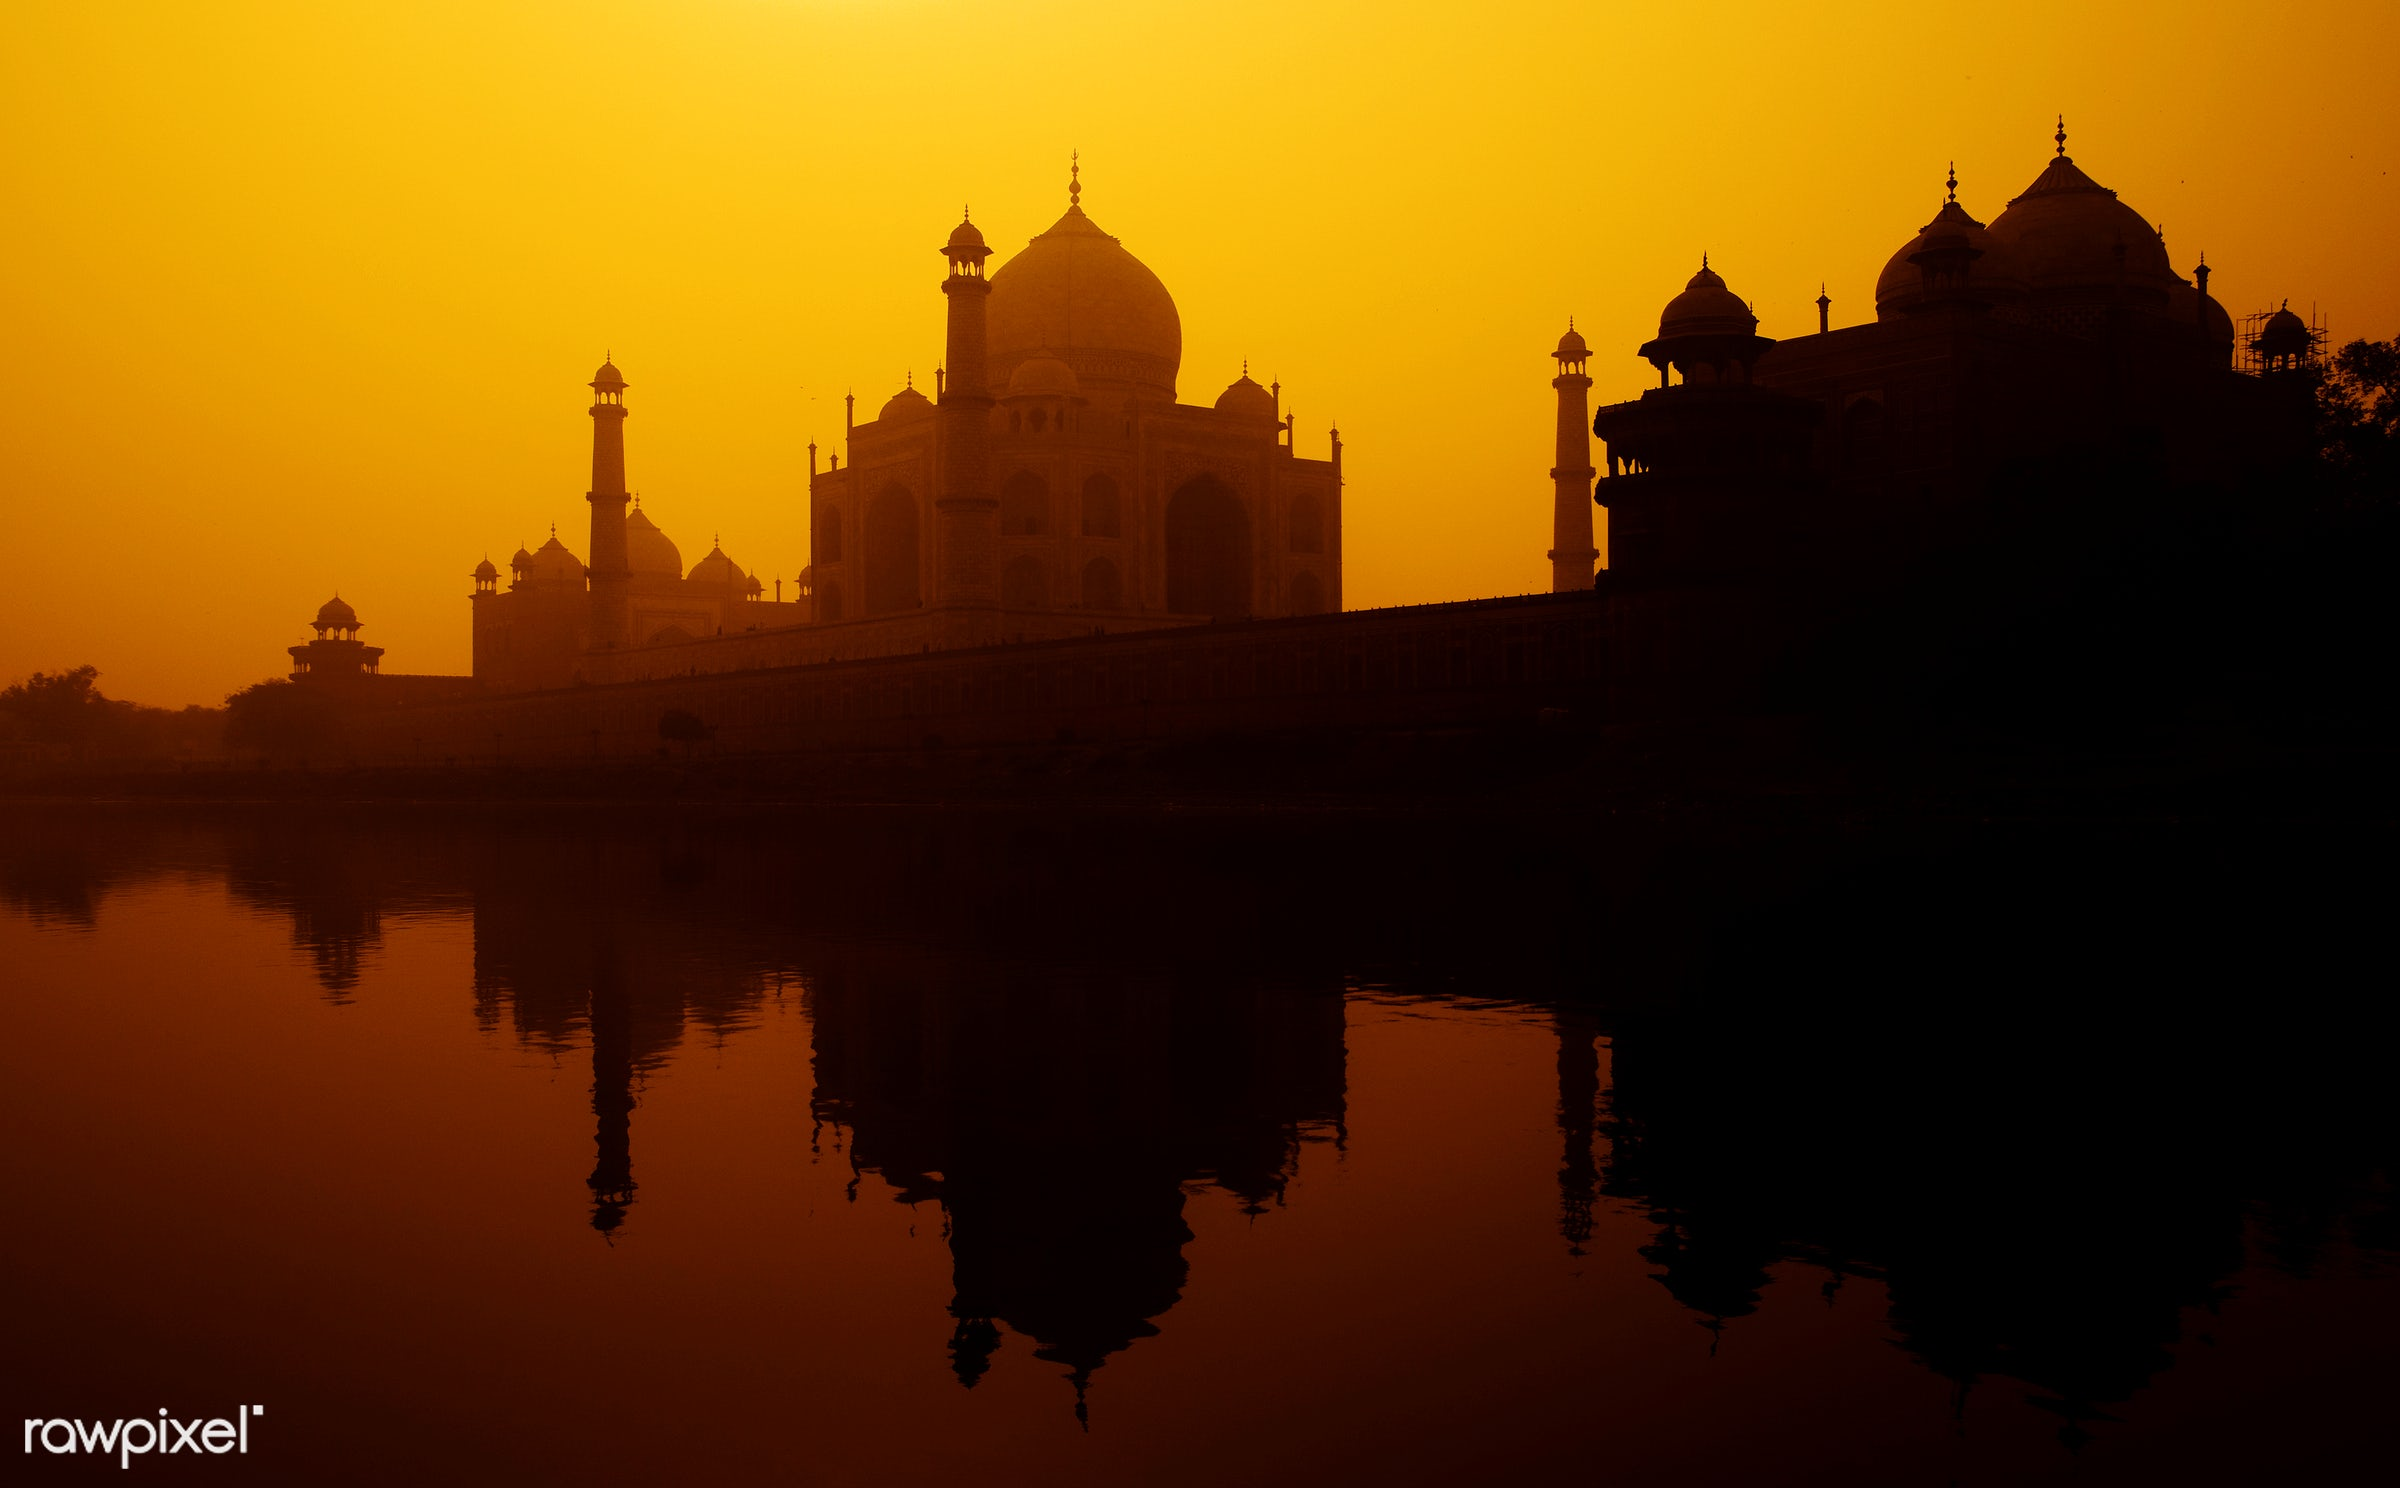 Sunset silhouette of a grand Taj Mahal - india, famous place, 7 wonders, architectural styles, architecture, architecture...